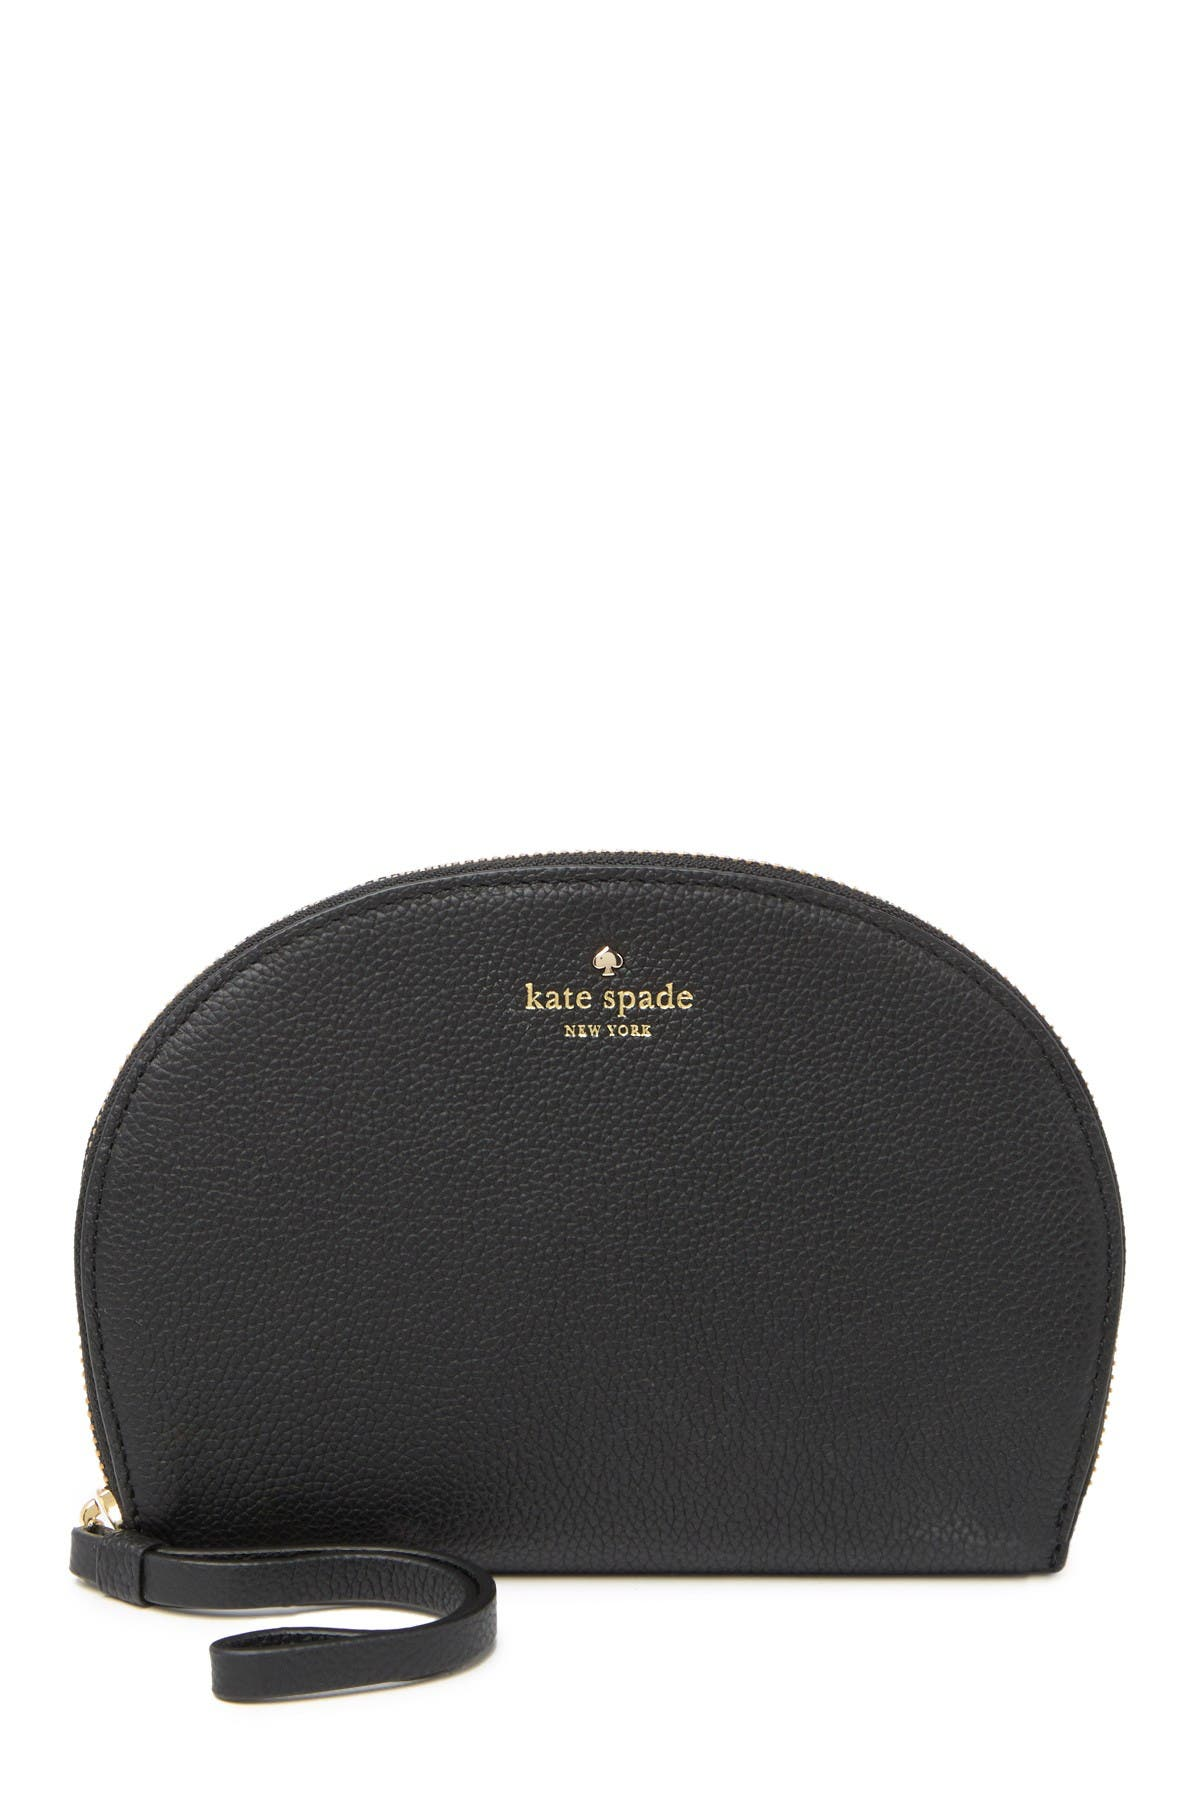 Image of kate spade new york shara leather zip clutch